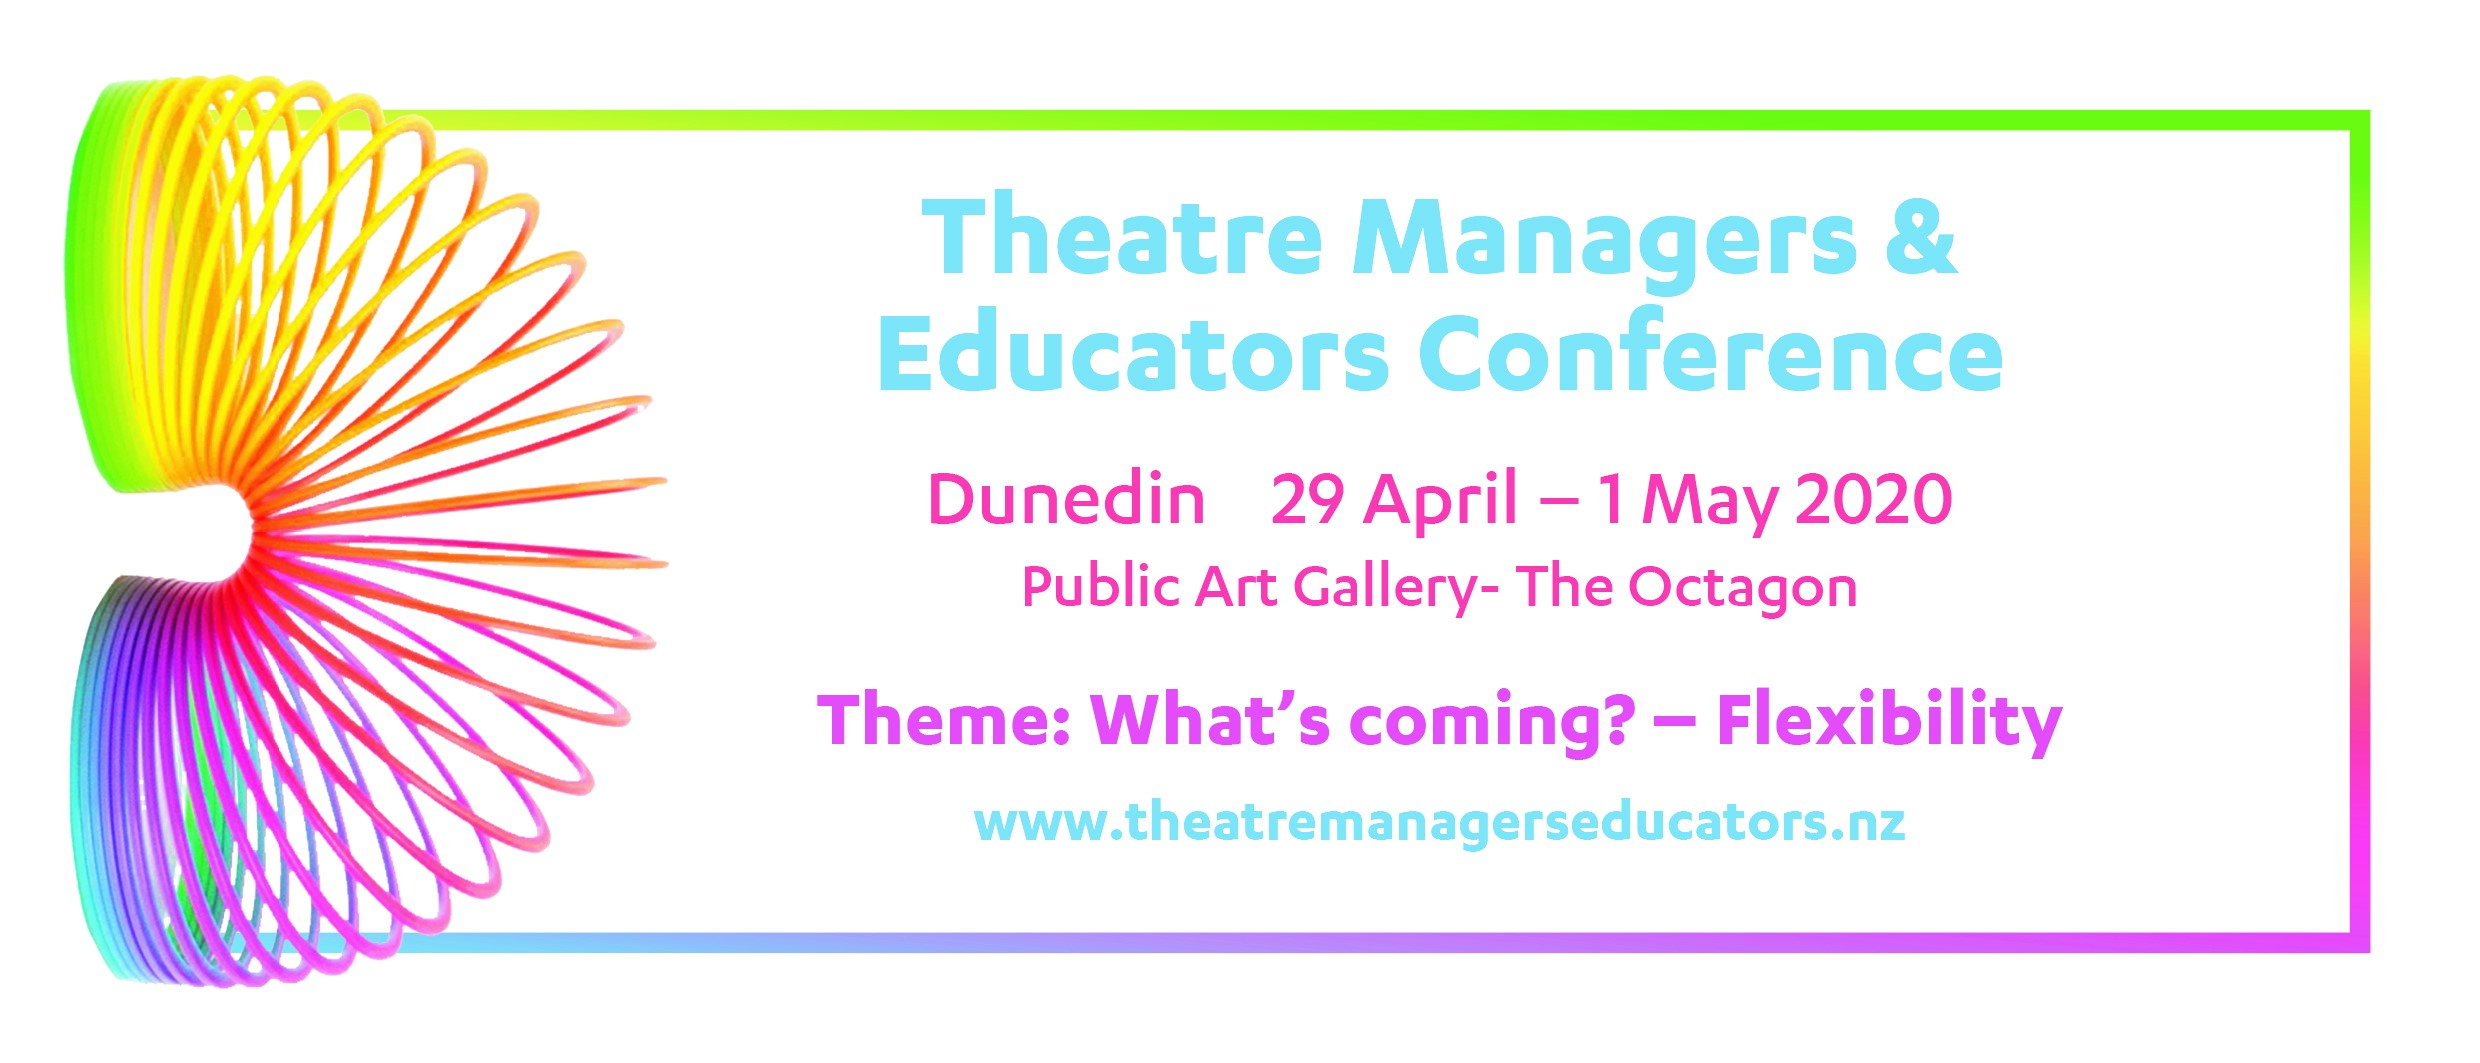 Theatre Managers and Educators Conference